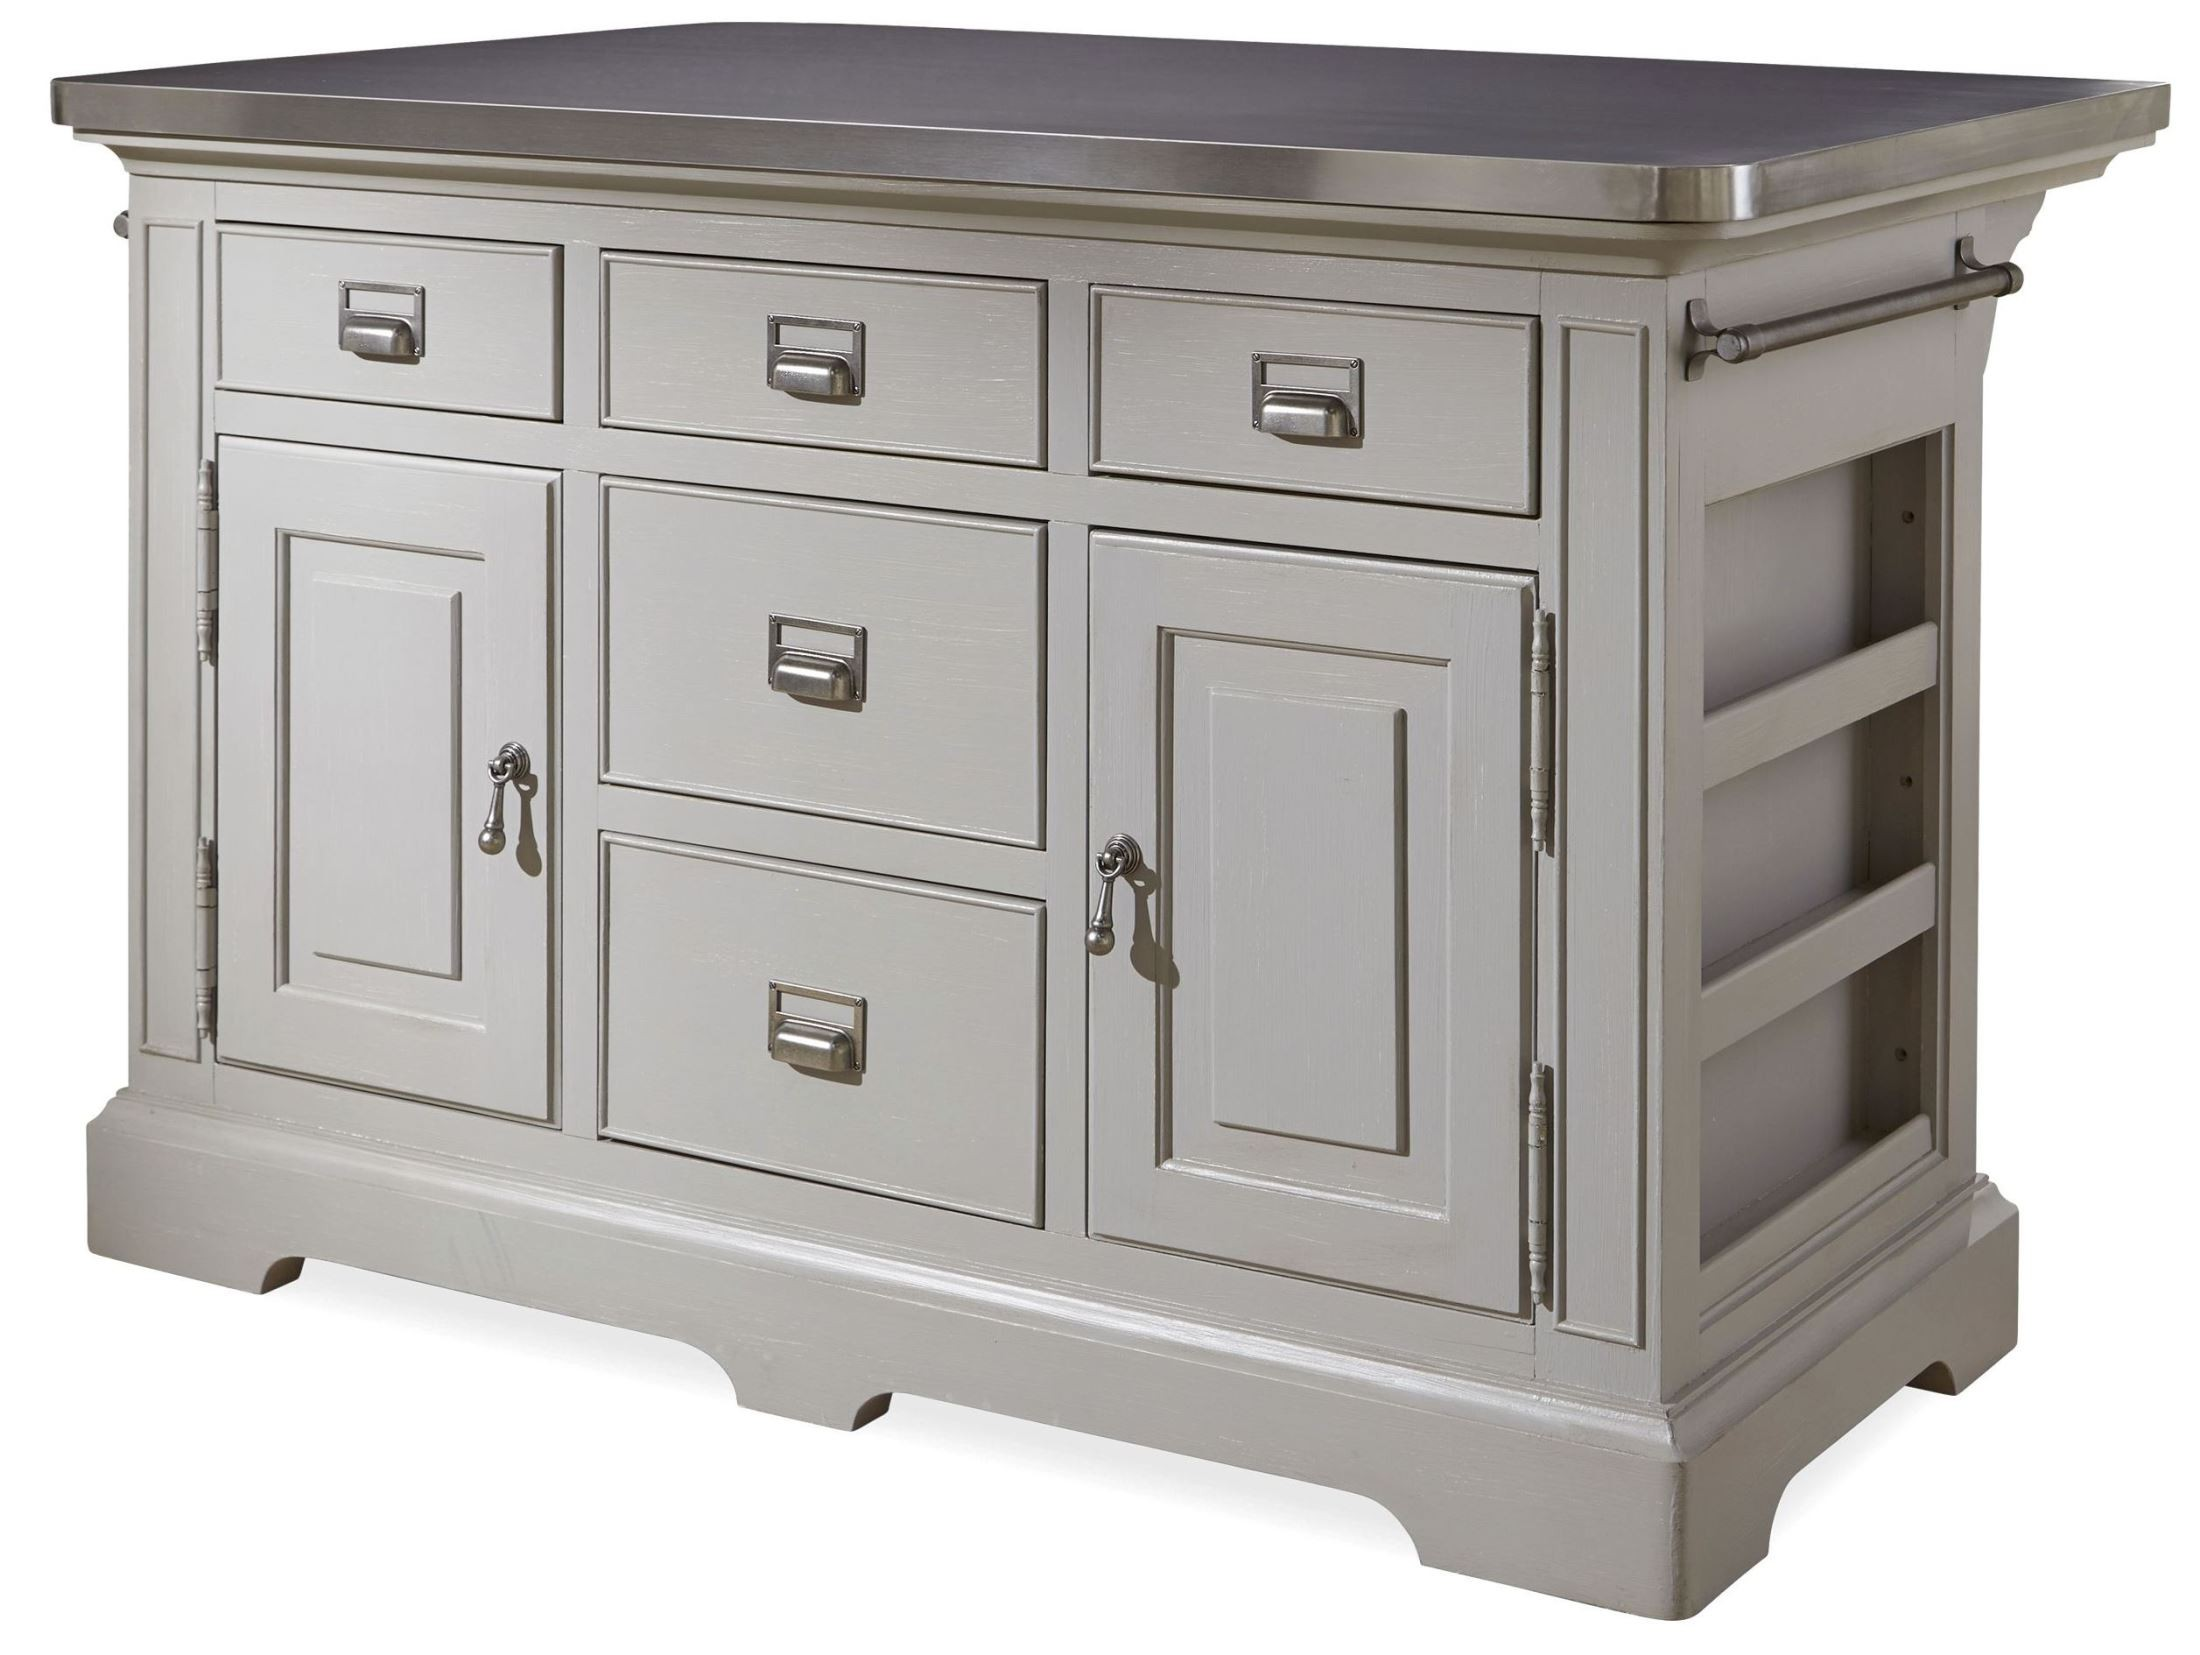 the kitchen island from paula deen 599644 coleman furniture